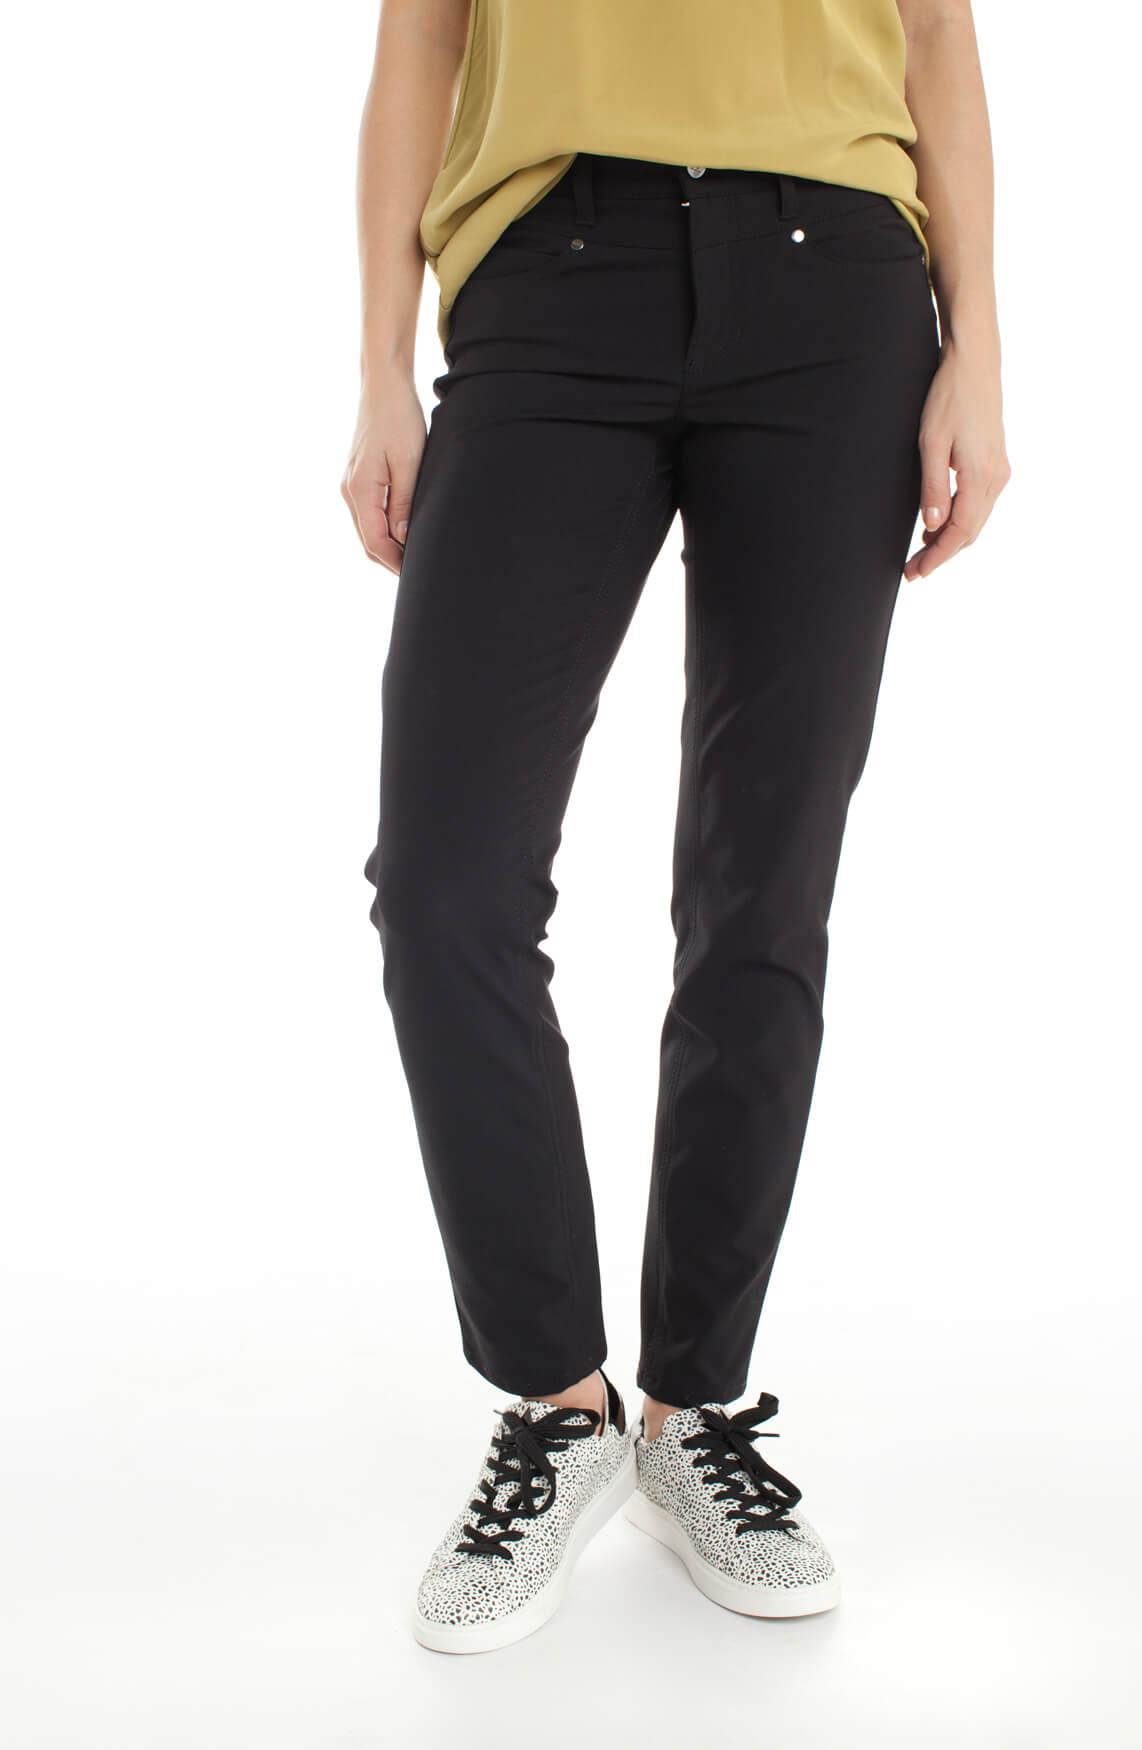 Cambio Dames Posh stretch pantalon zwart